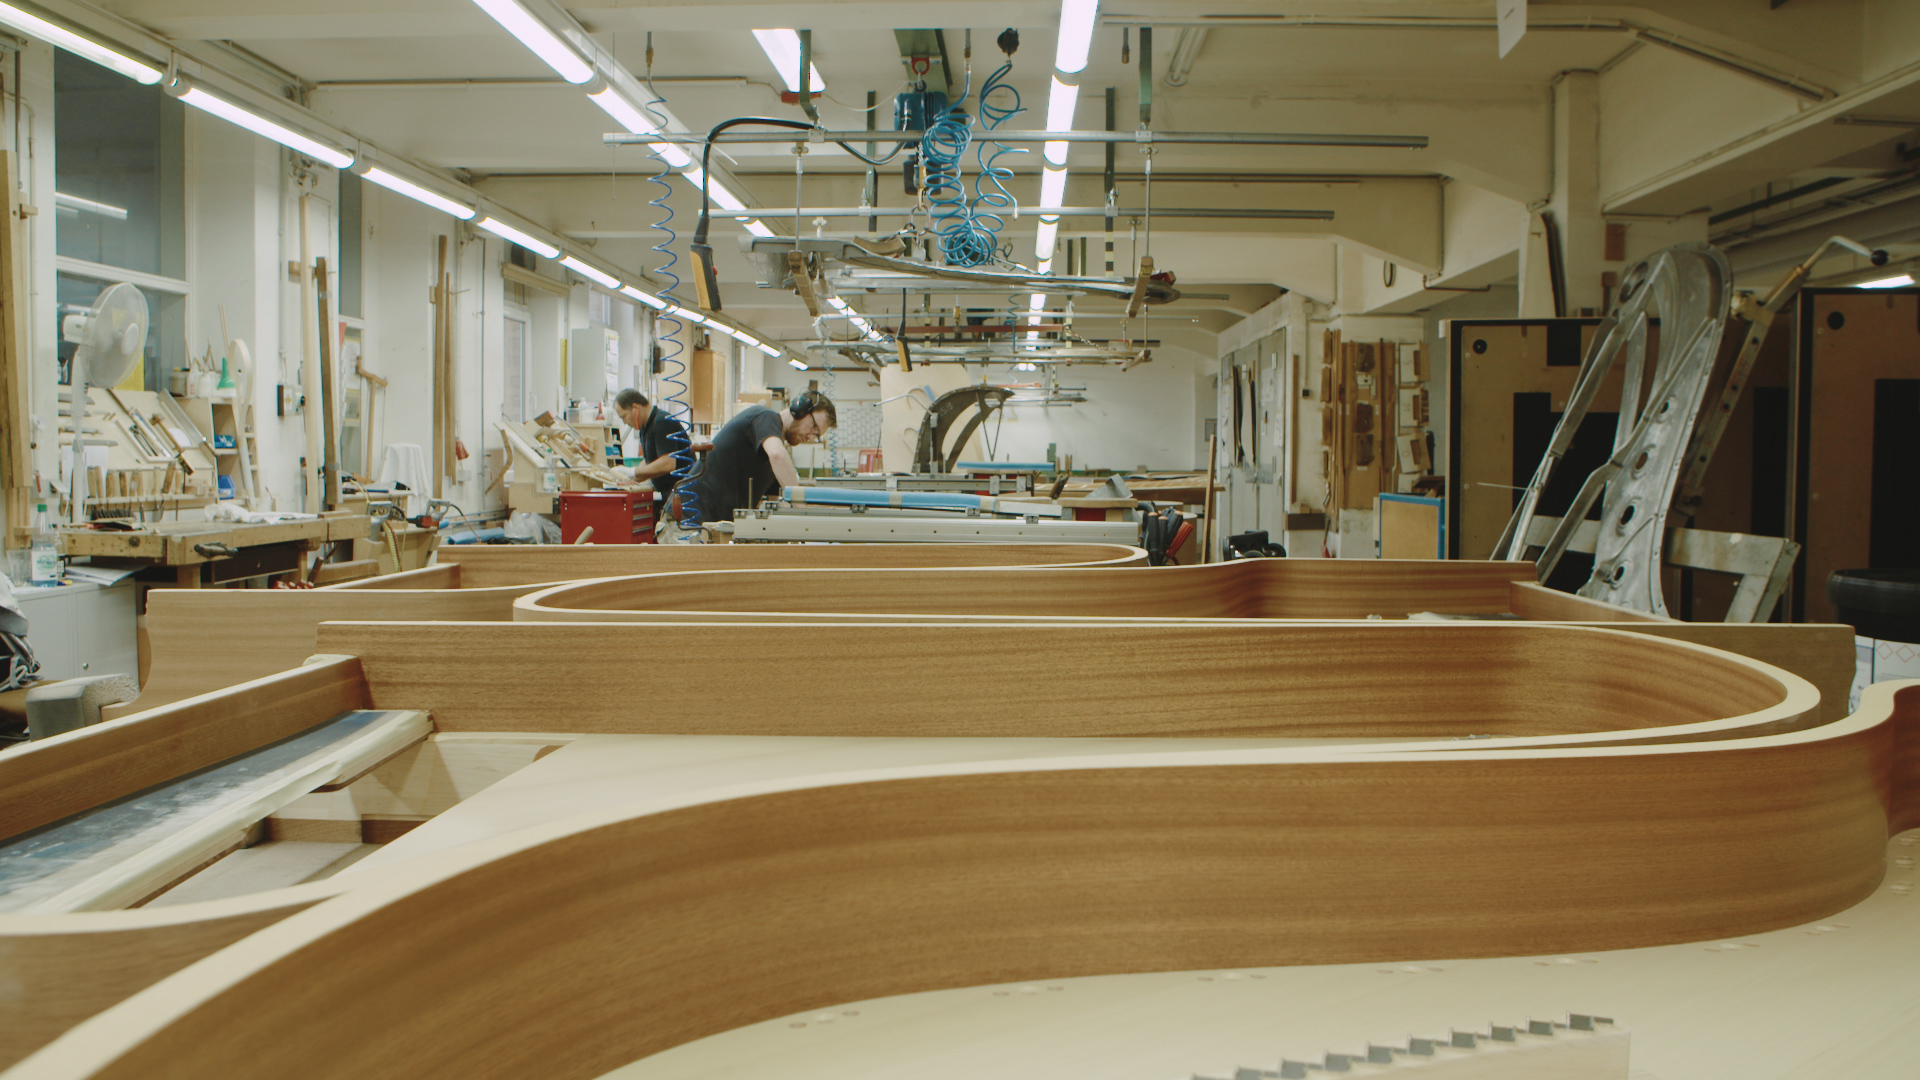 Steinway piano factory image by STROMA Films